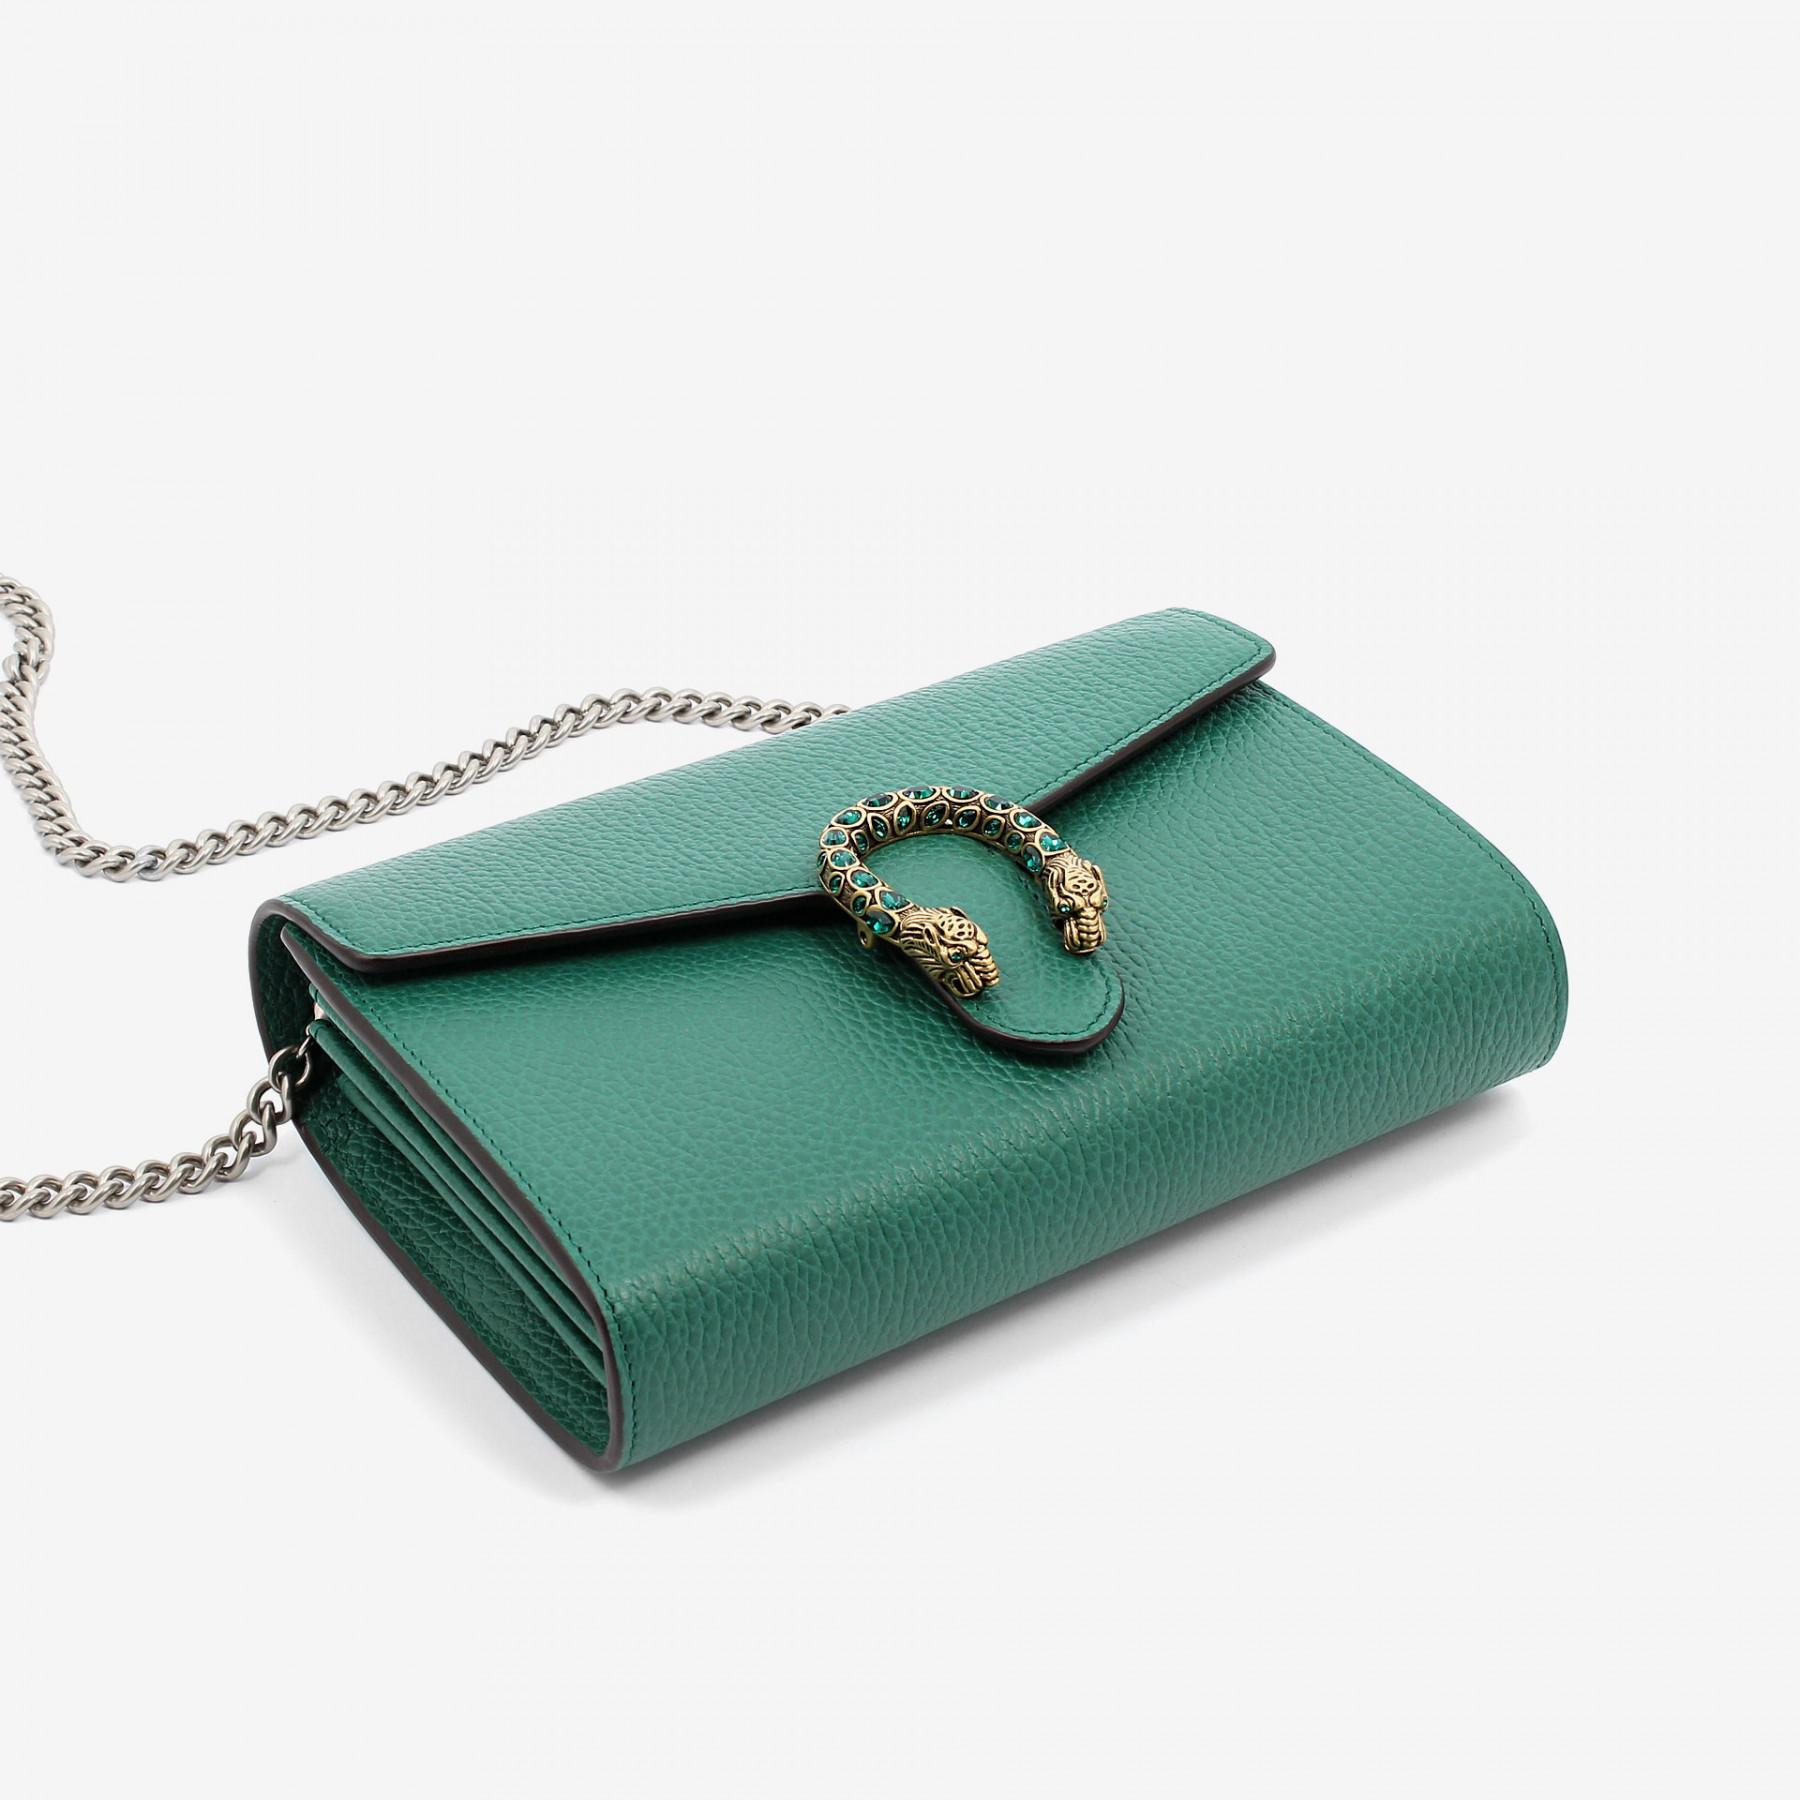 1b7068776ac Gucci Dionysus Wallet On Chain Green - Best Photo Wallet ...